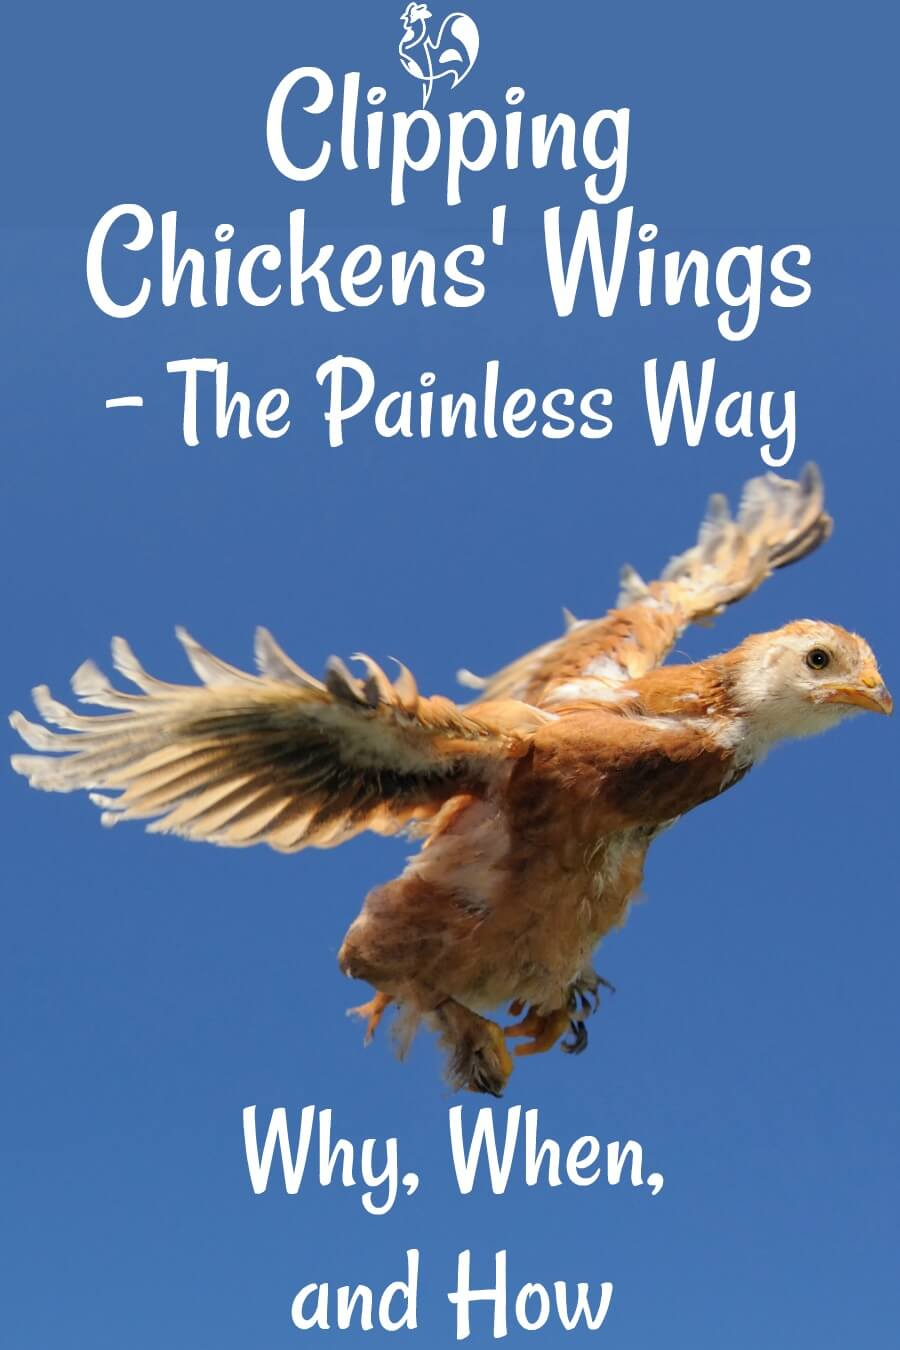 Worried about your girls flying into danger? Chickens can fly from a very young age, and often fly into danger. Here's how to clip chickens' wings without causing them - or you - any pain!